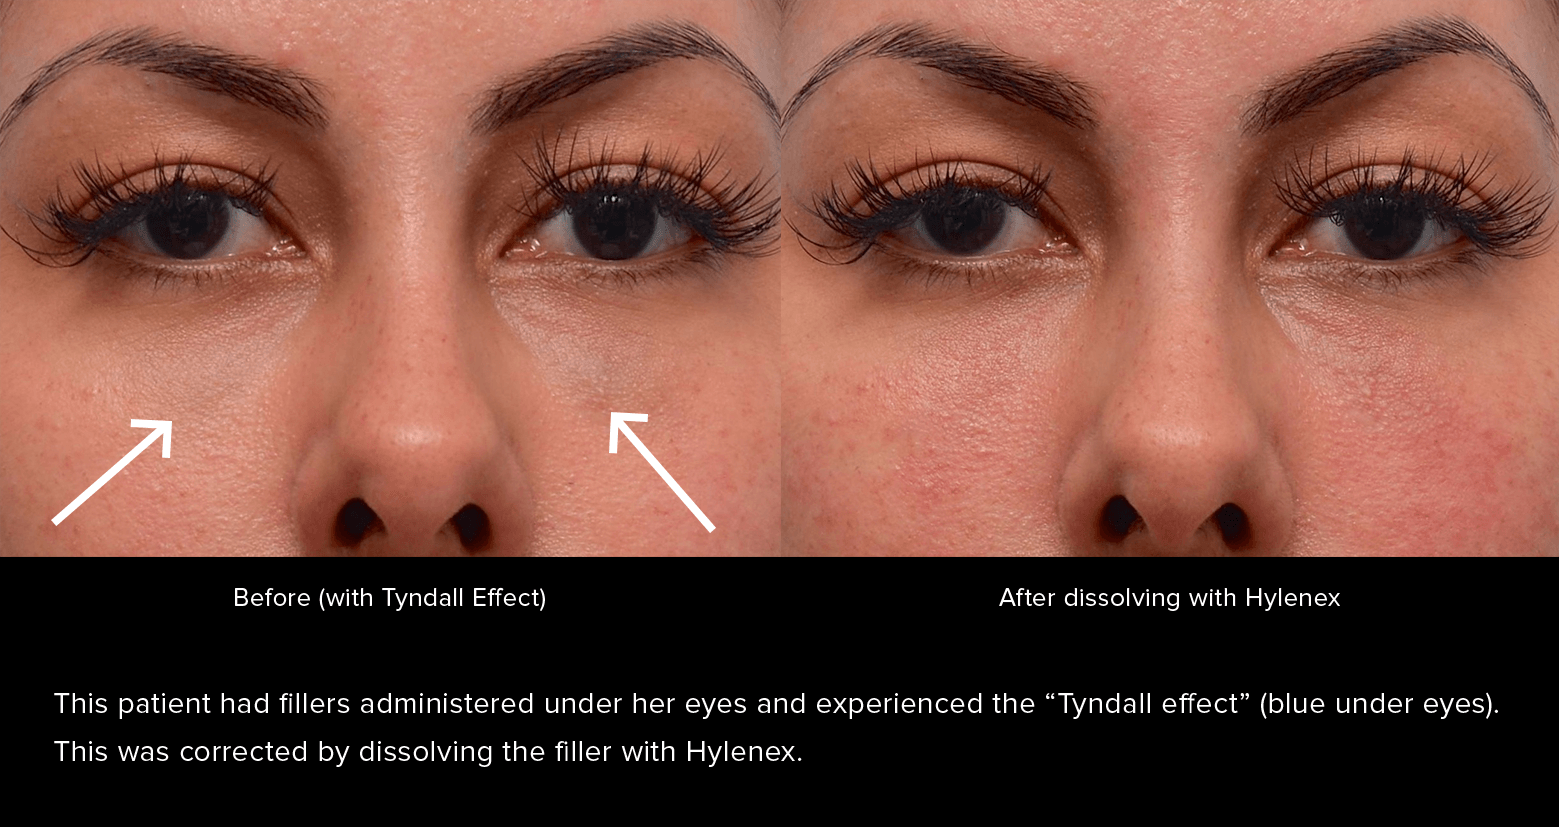 Under-eye filler before and after. This patient had fillers administered under her eyes and experienced the Tyndall effect (blue under eyes). This was corrected by dissolving the filler with Hylenex.